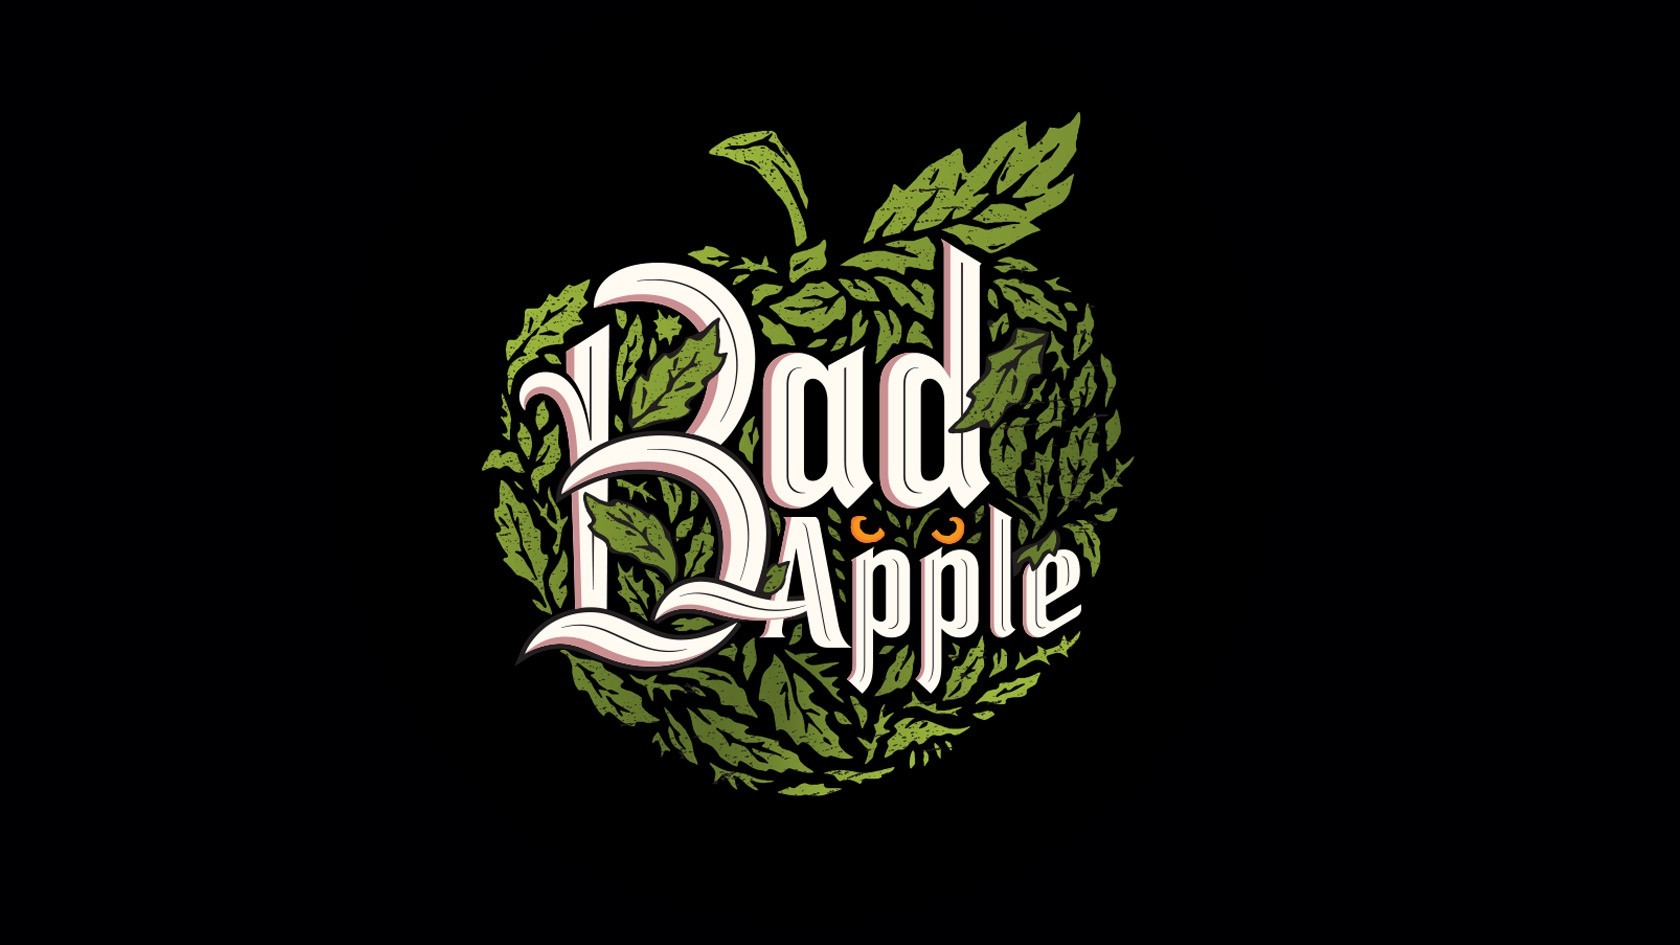 WMH_Carlsberg_Bad_Apple_logo-WEB